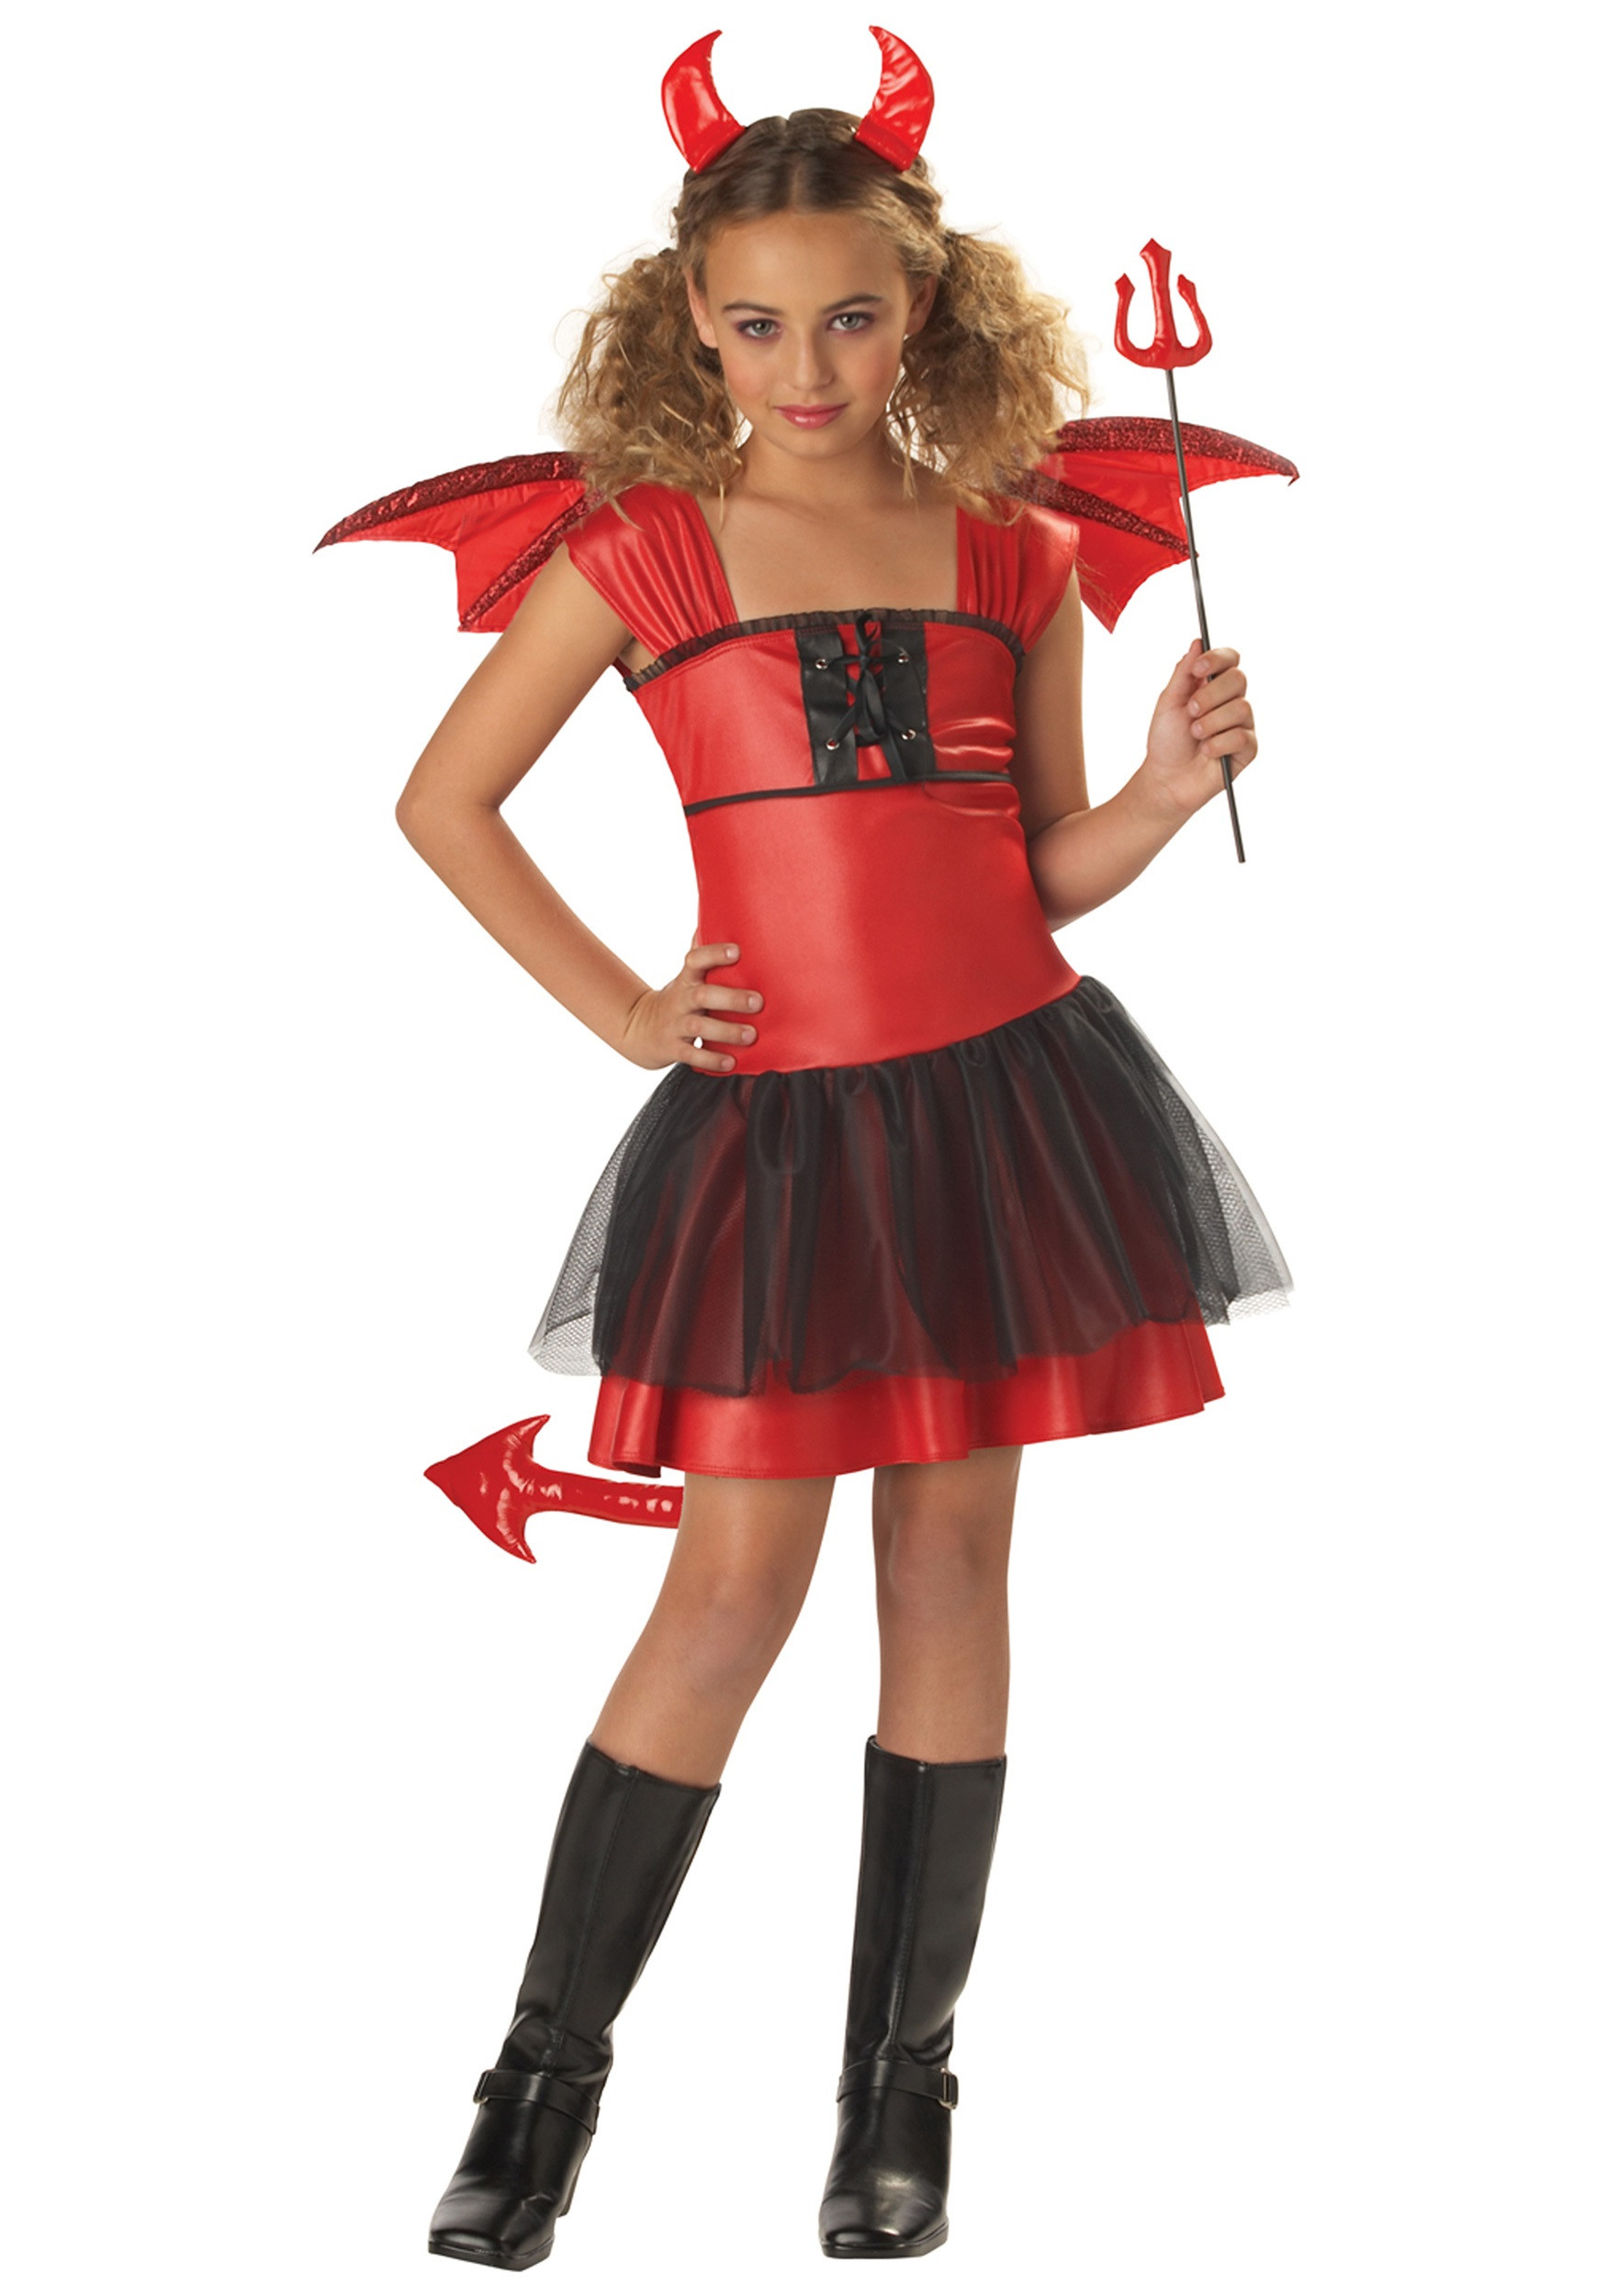 Best ideas about DIY Costumes For Girls . Save or Pin Girls Darling Devil Costume Devil Halloween Costumes for Now.